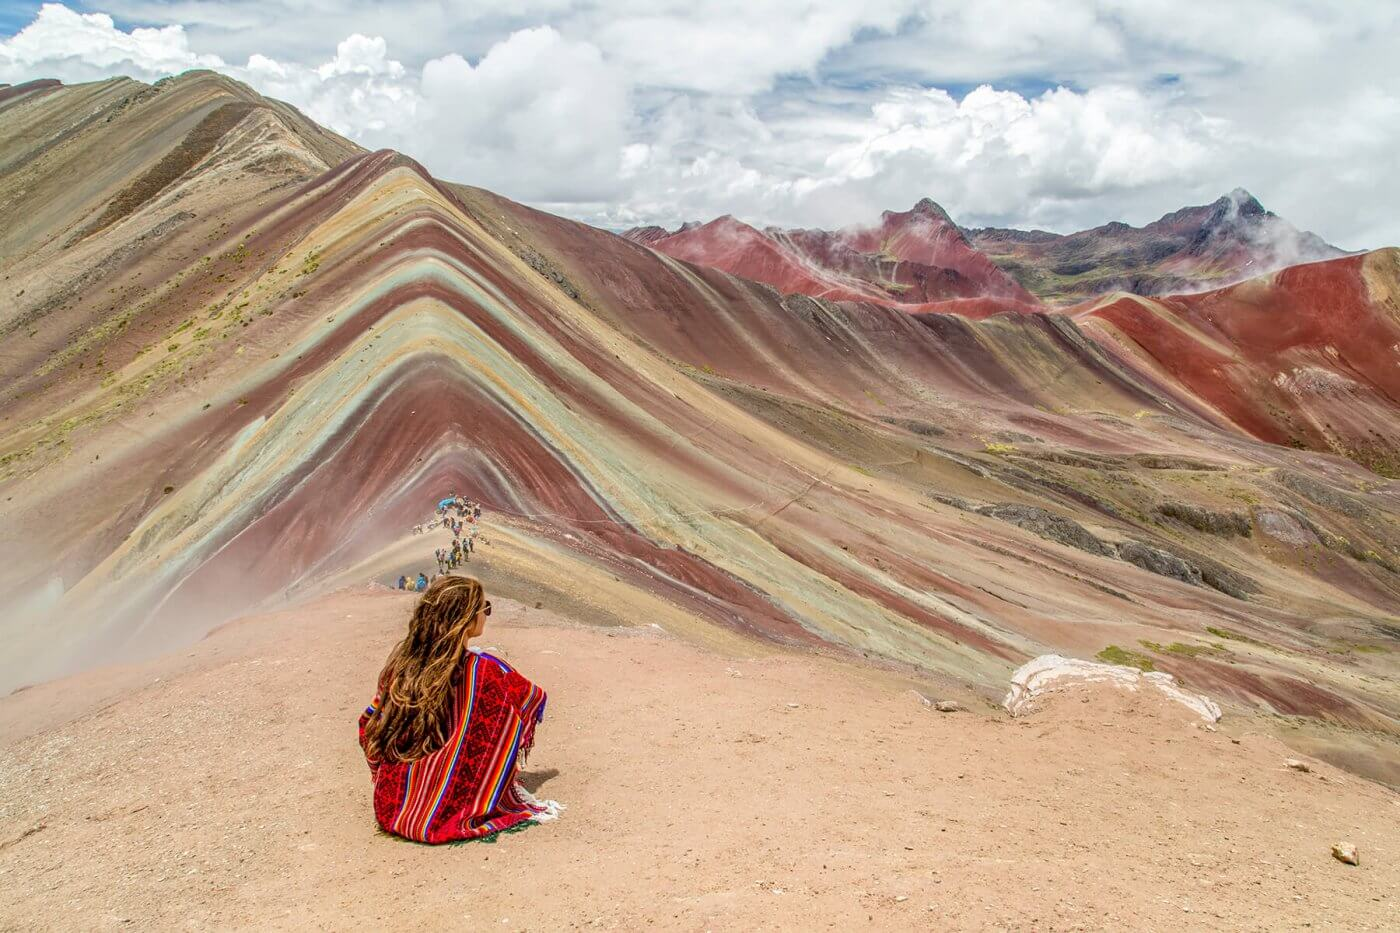 Rainbow Mountain is een opkomende bezienswaardigheid in Peru